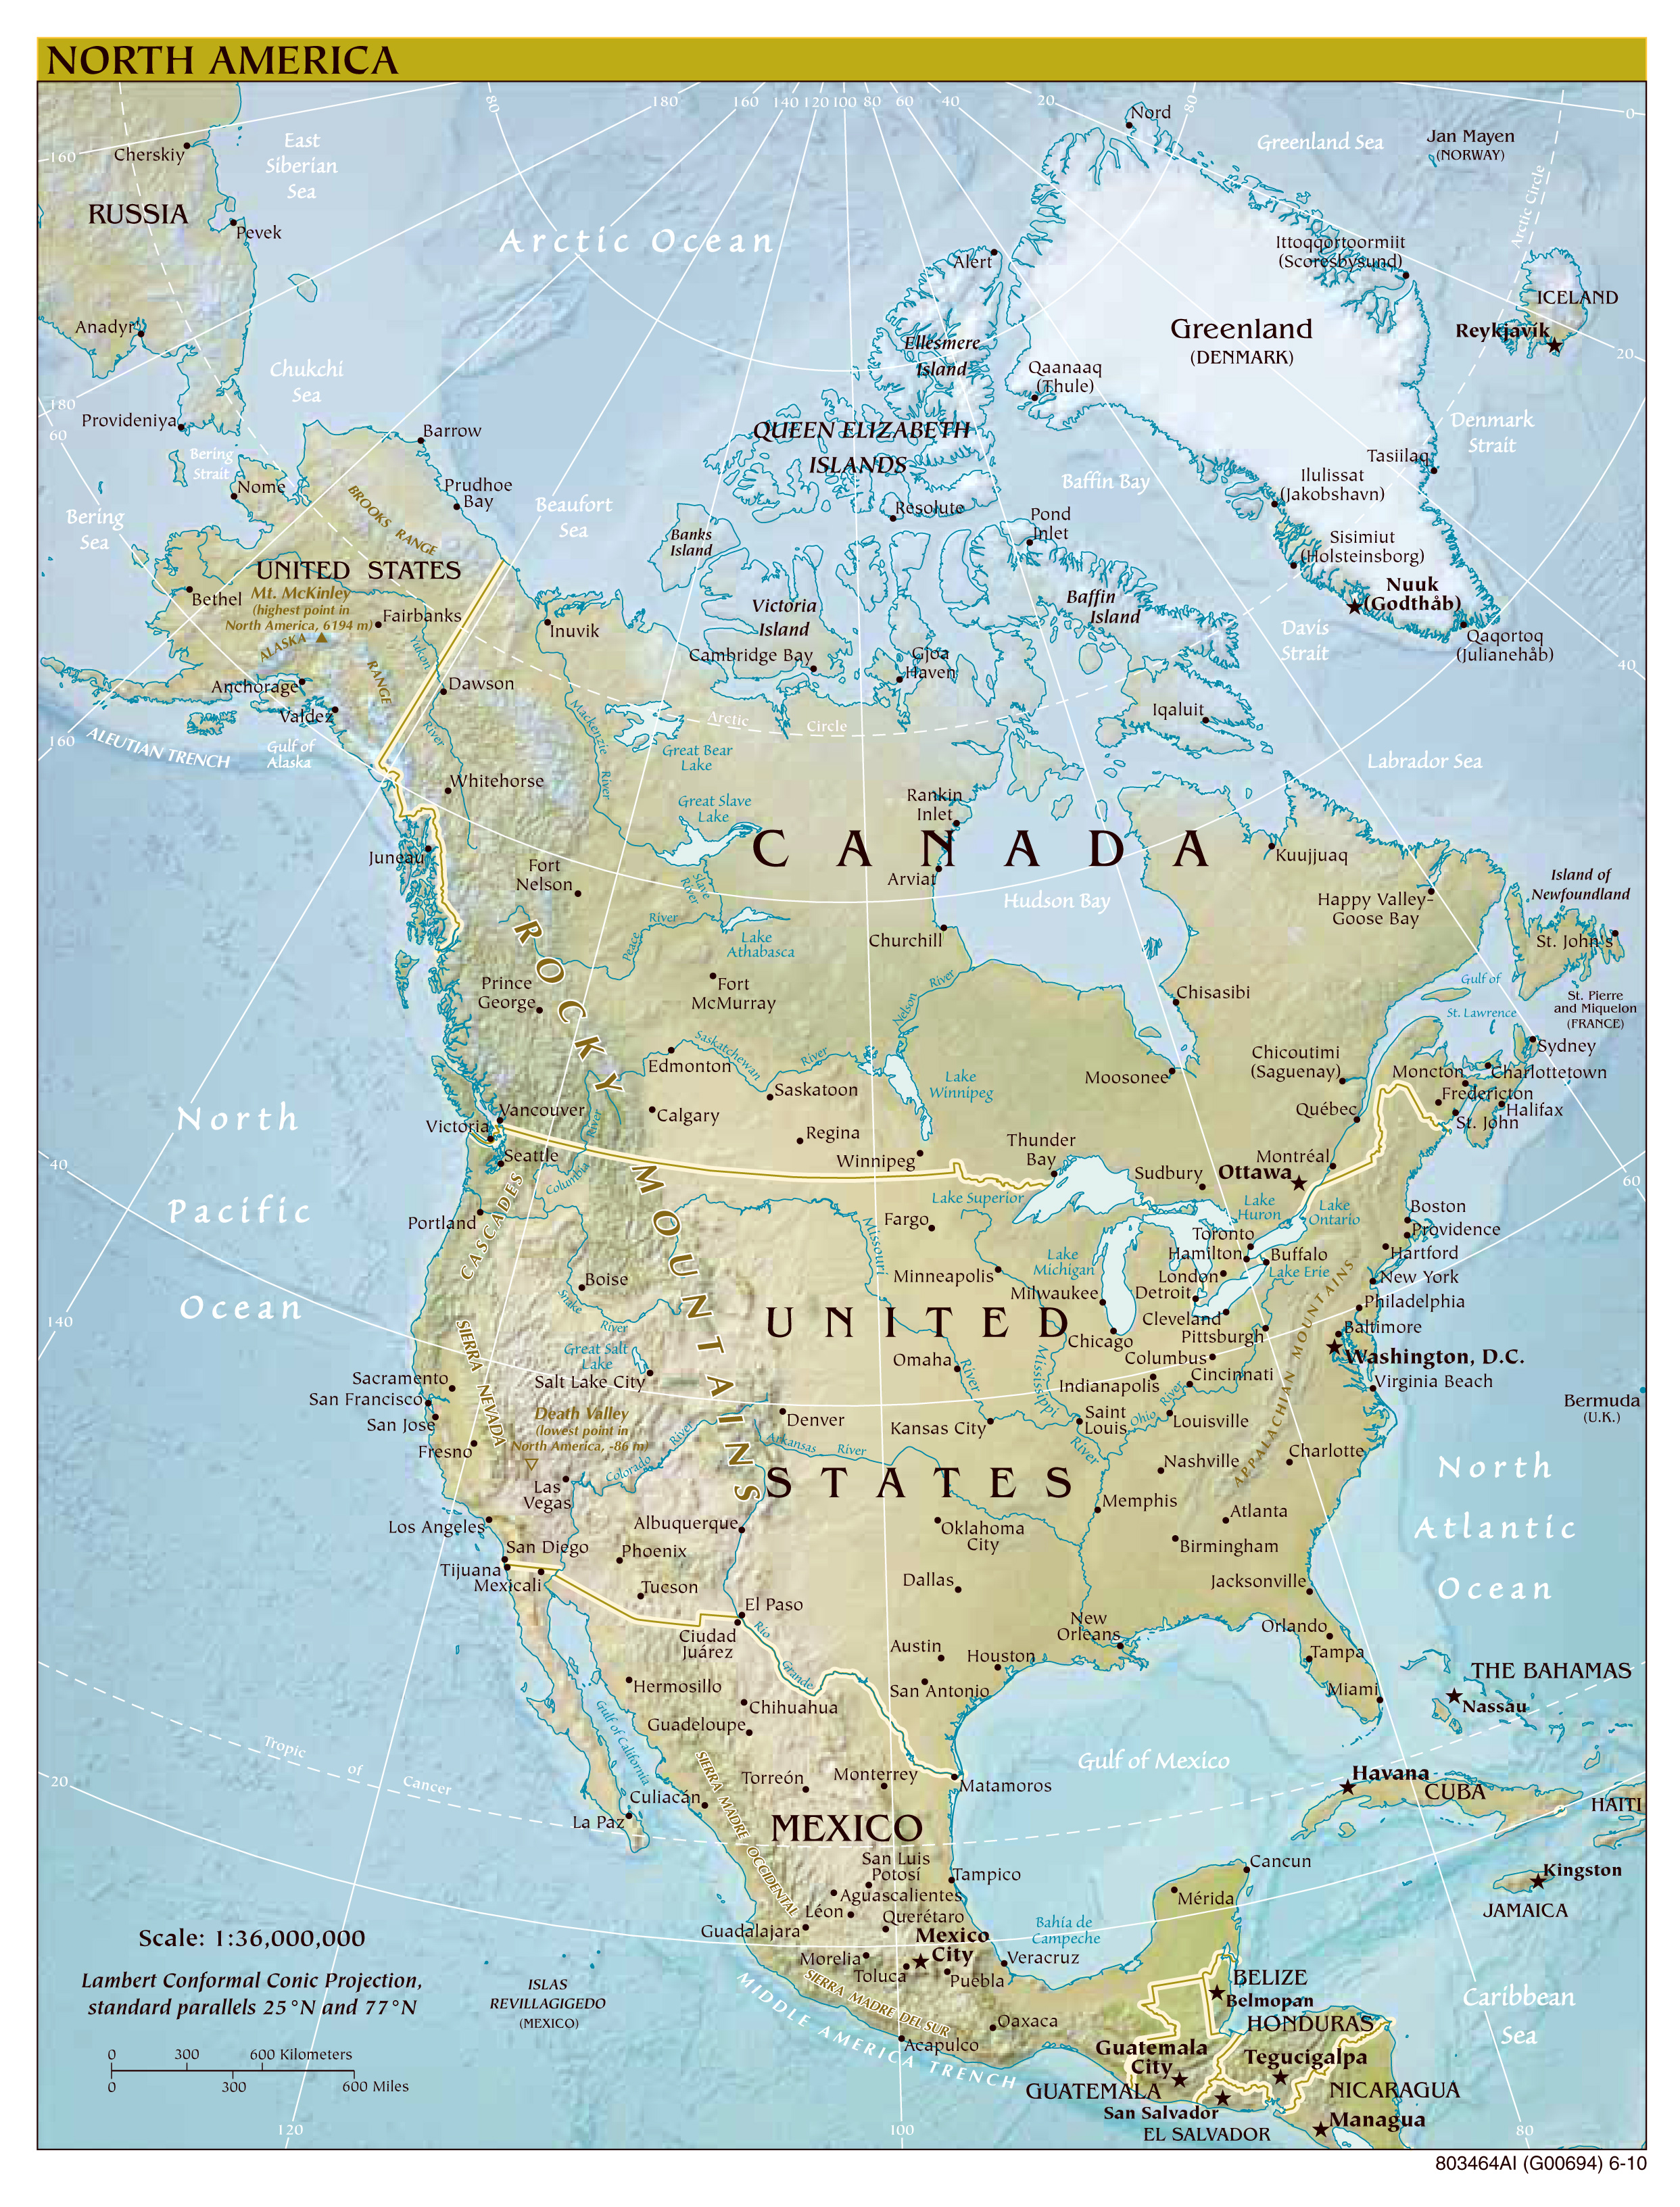 Maps Of North America And North American Countries Political - World map to scale